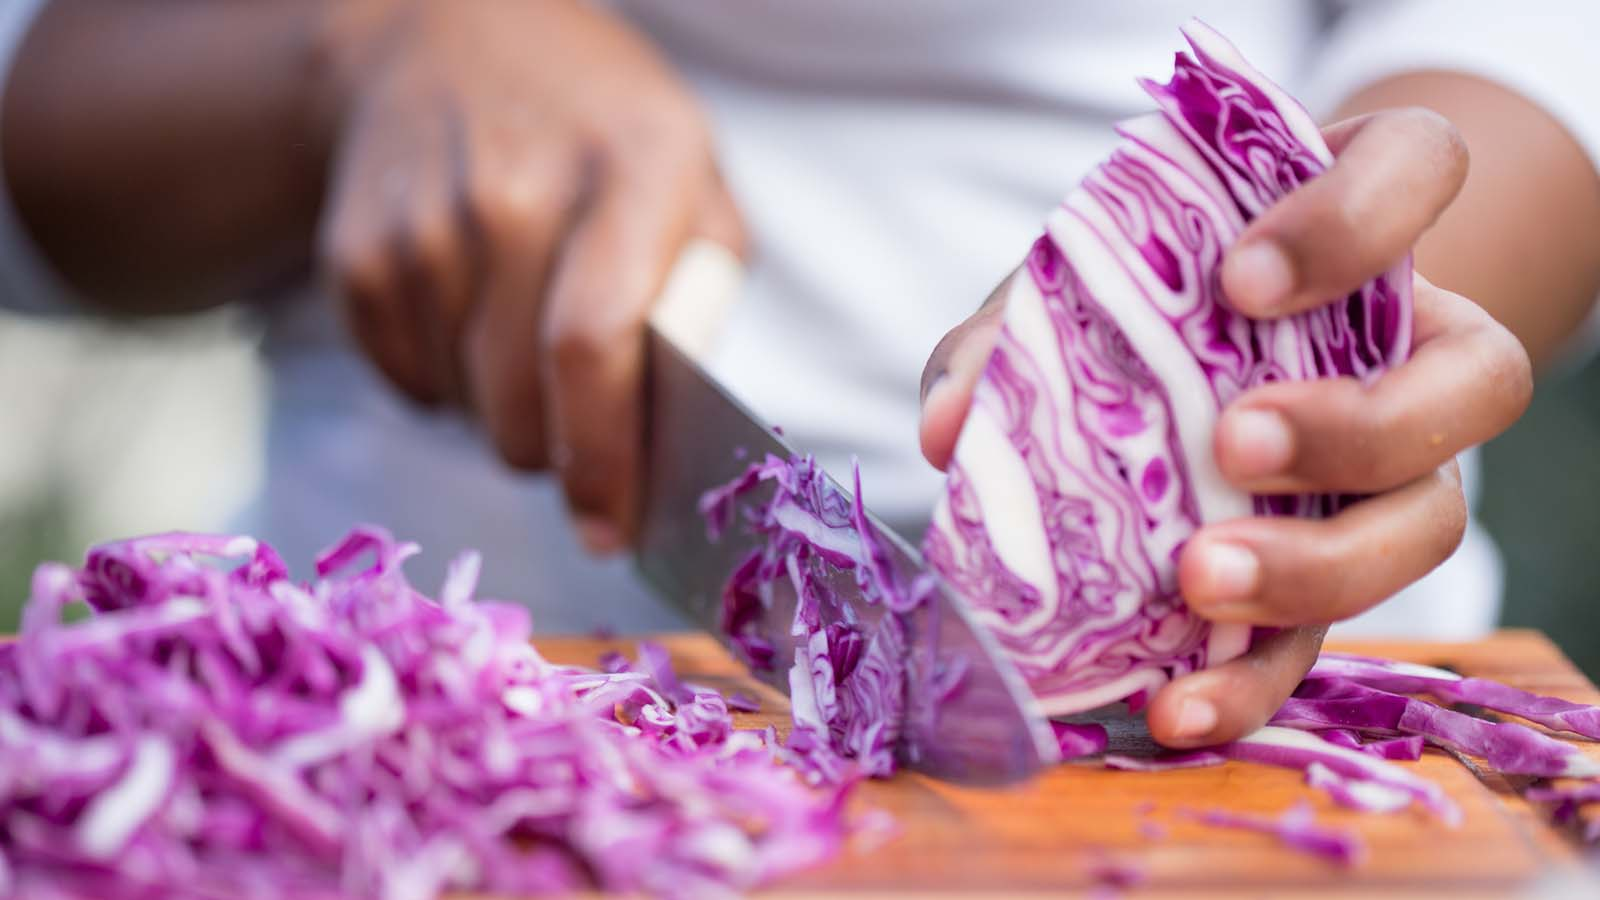 A person chops a head of red cabbage.